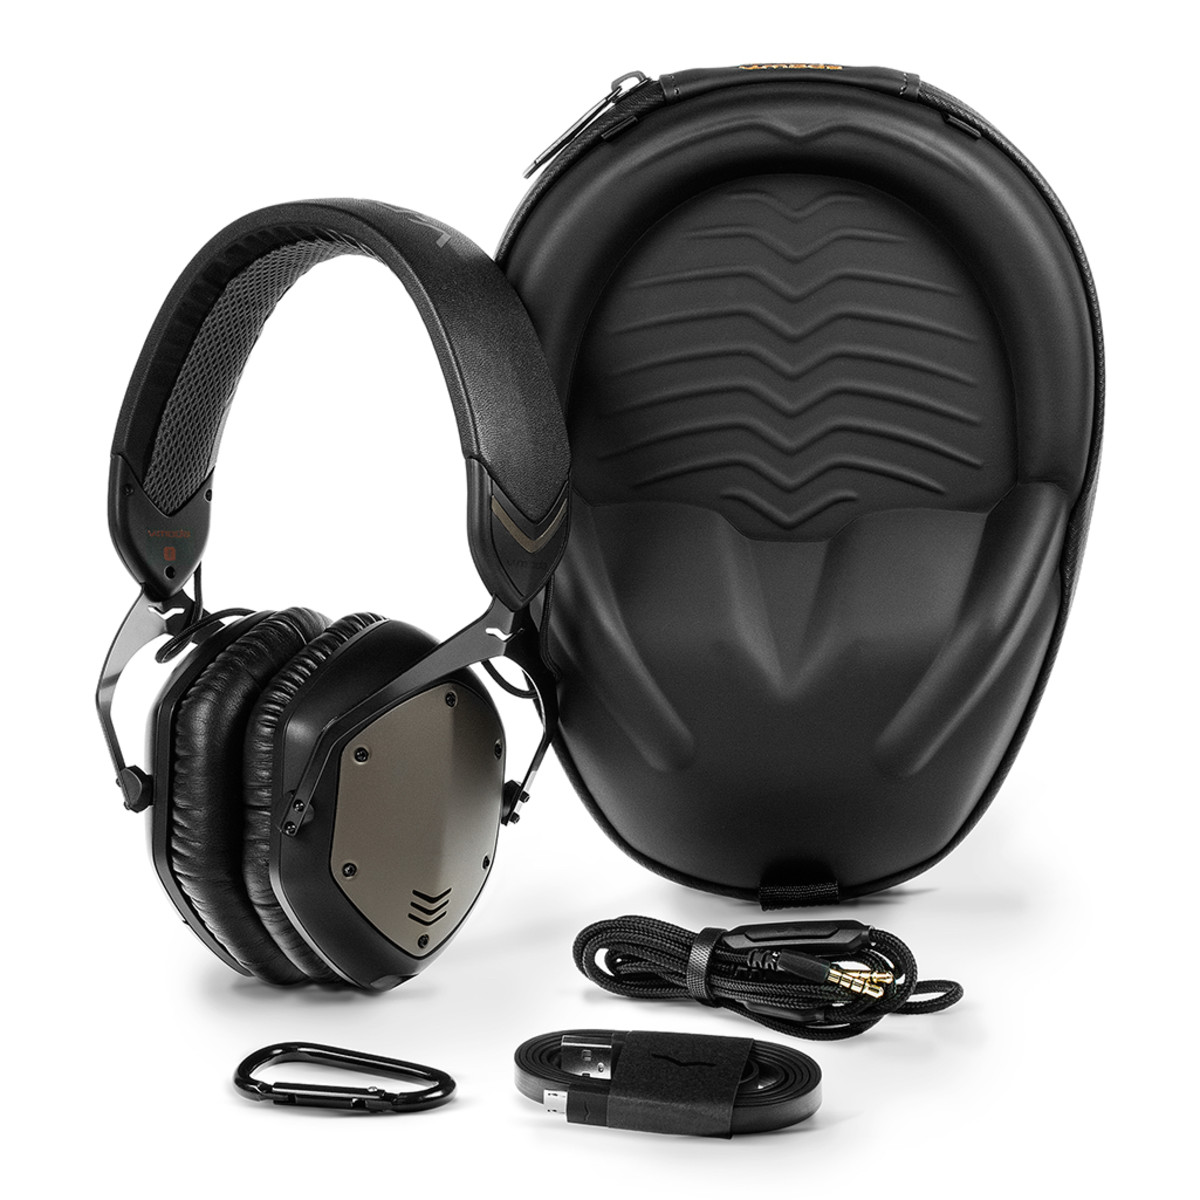 vmoda wireless